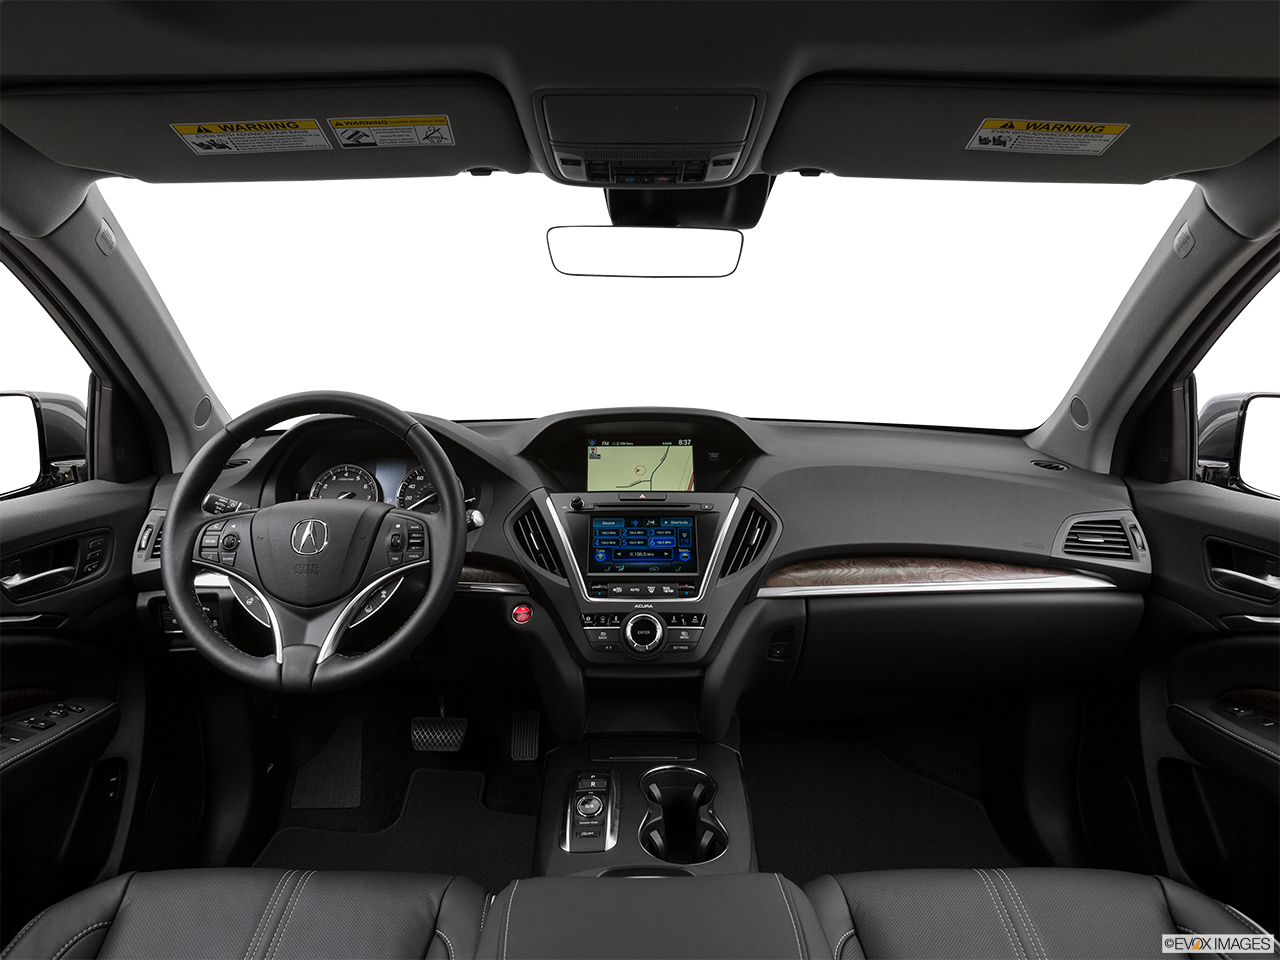 acura mdx interior lights stay on latest news car